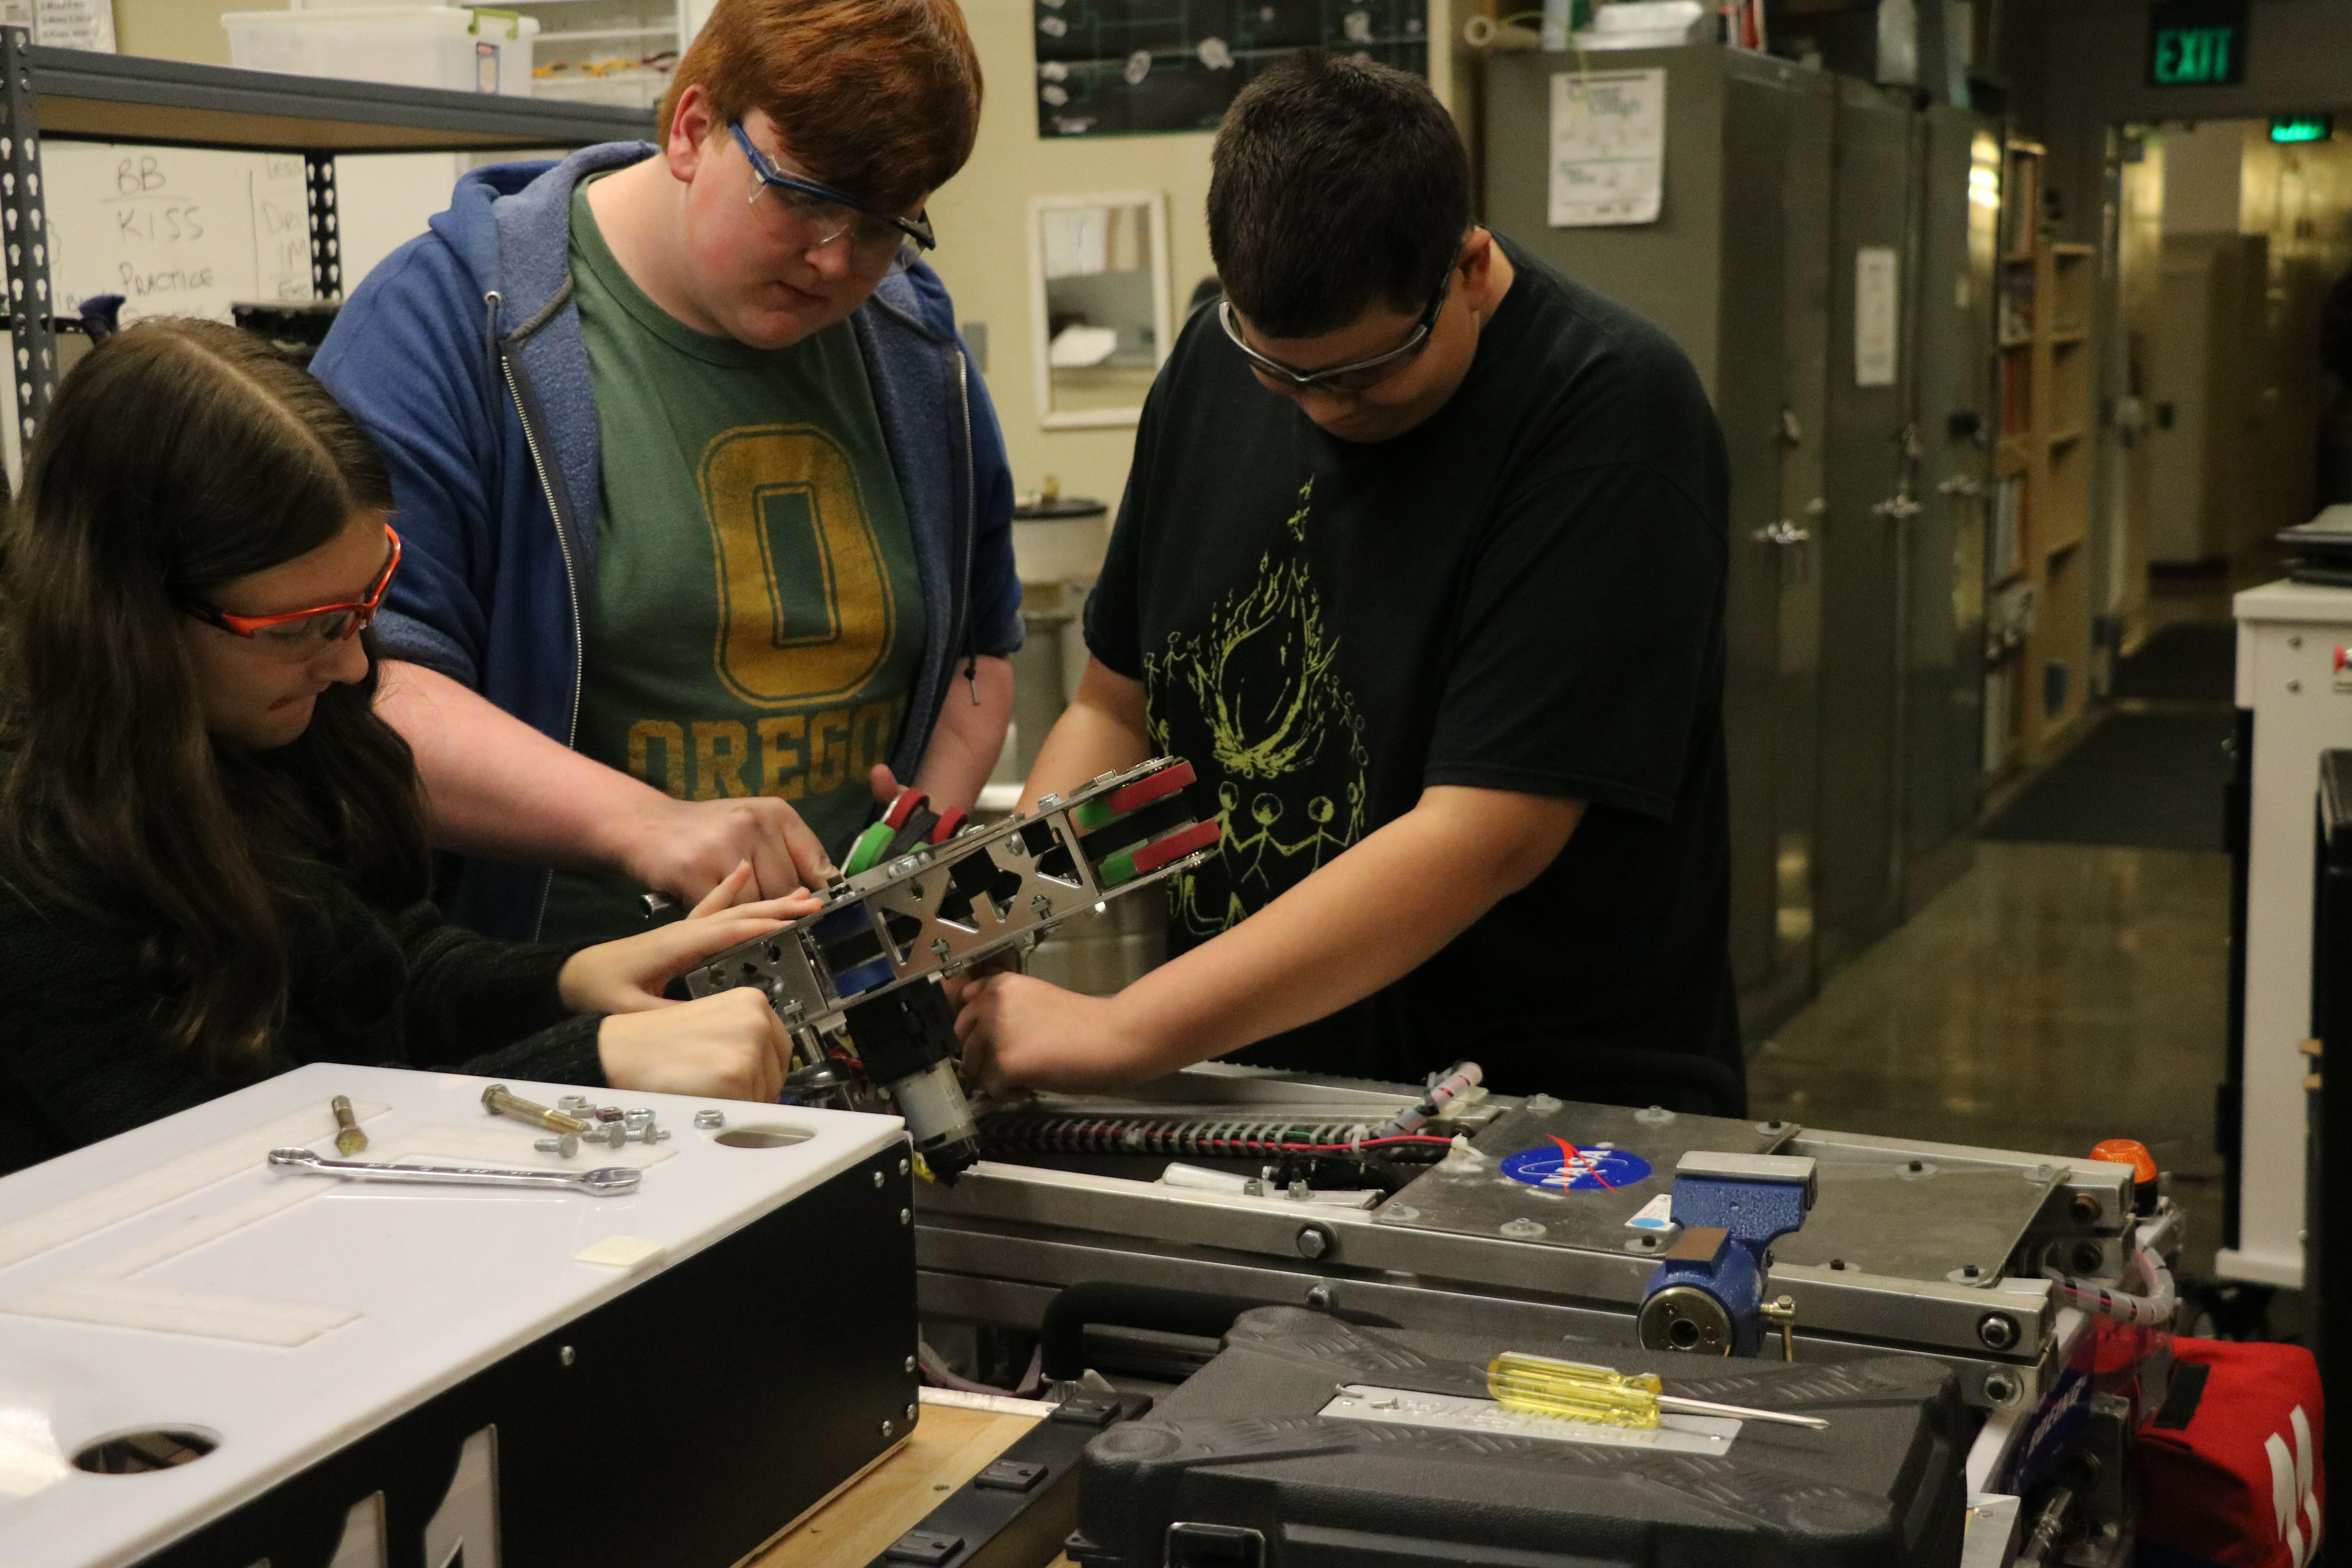 Several team mates working on disassembling various parts of a robot.